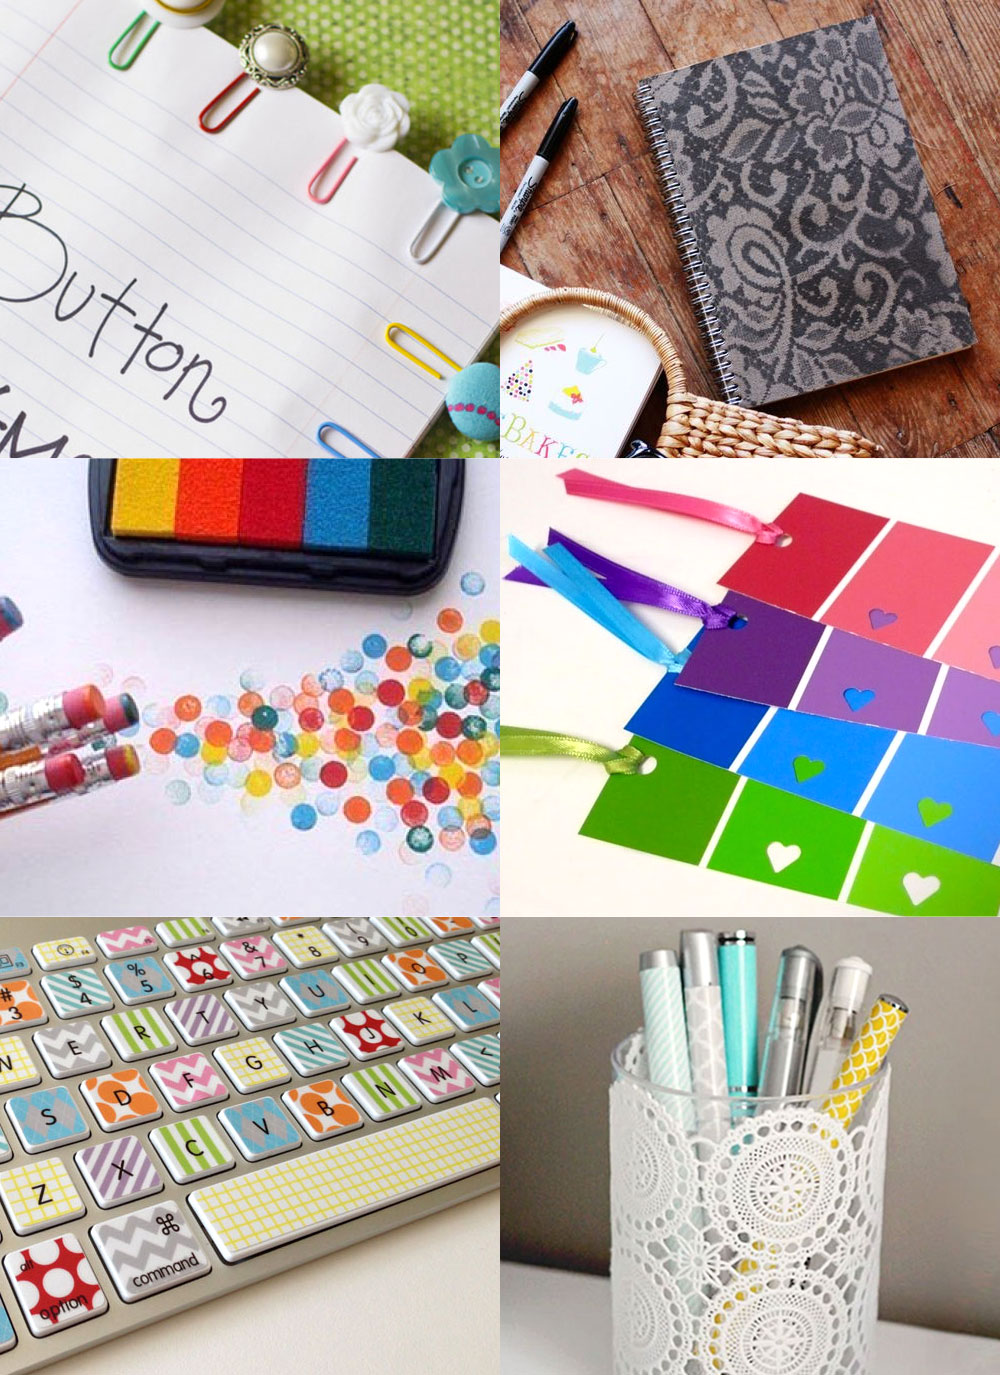 DIY Back To School Ideas for Moms